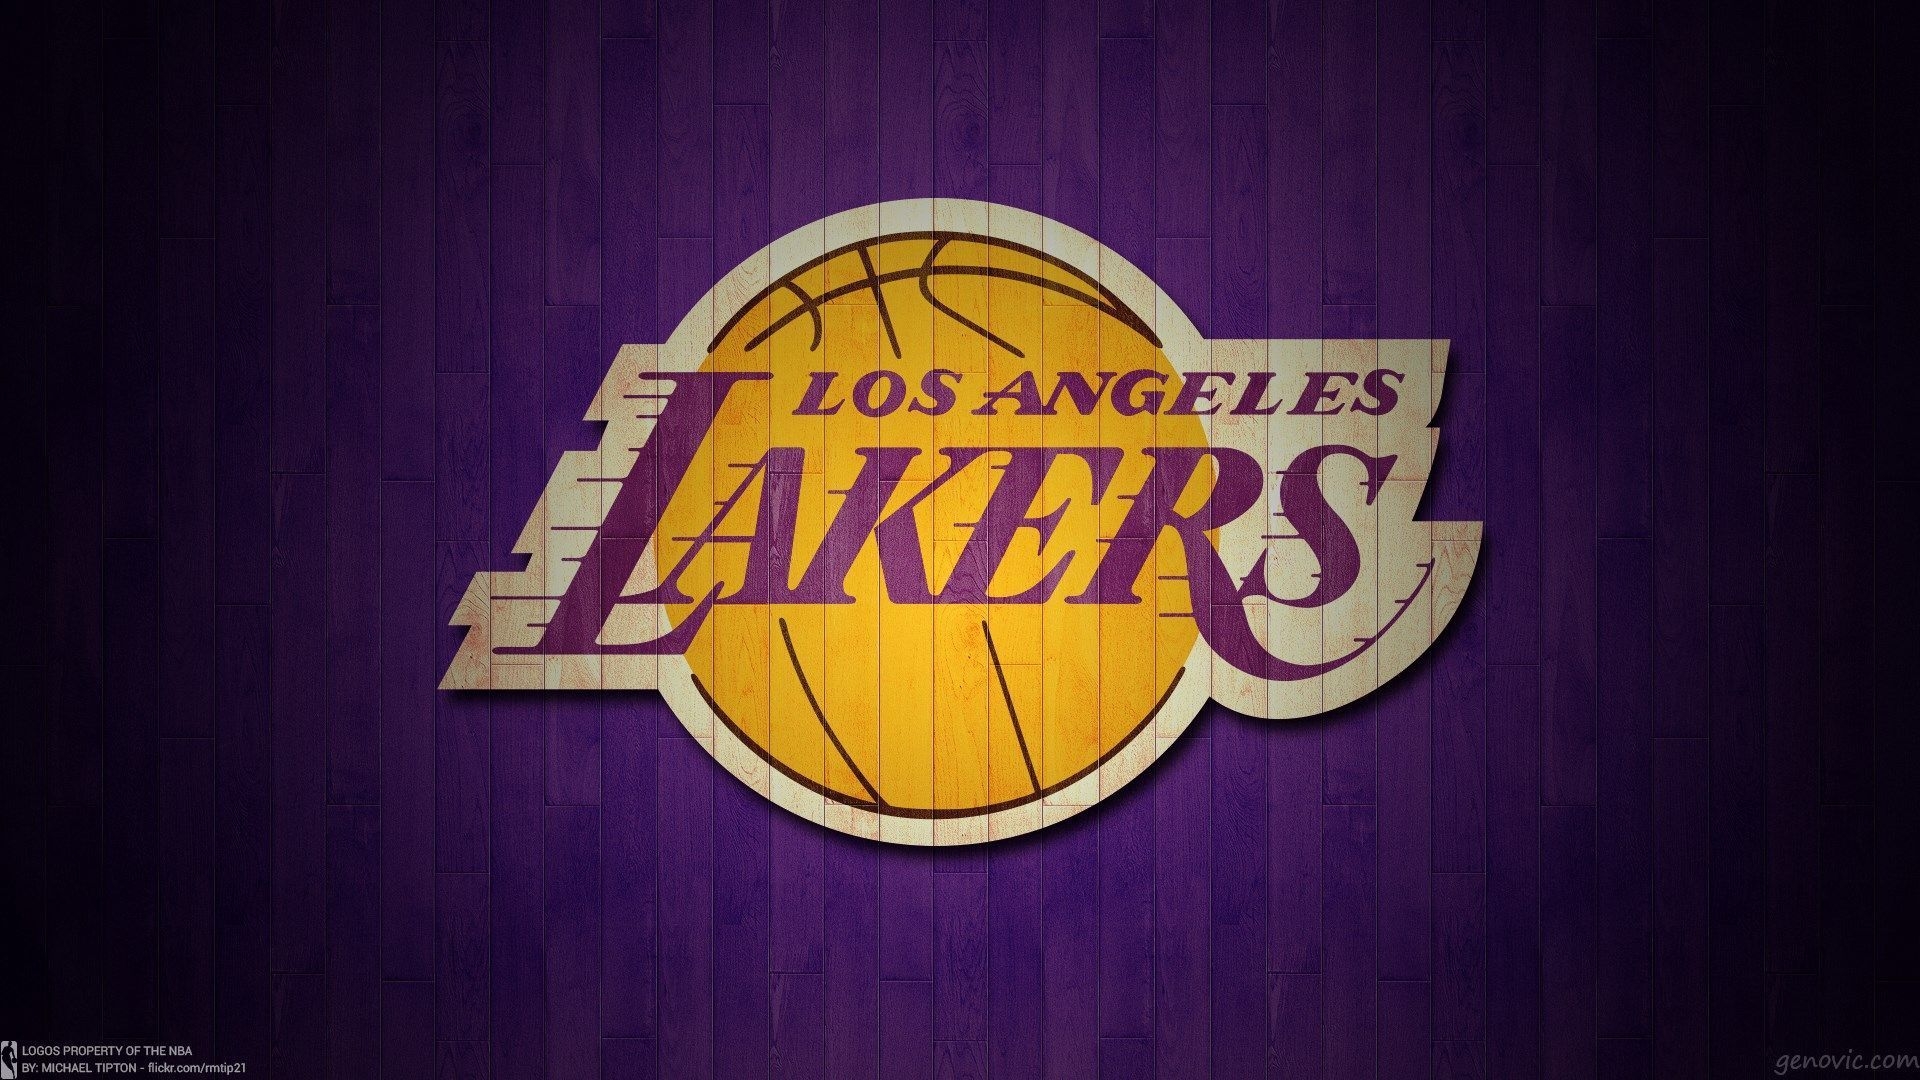 Lakers Wallpaper Macbook Lakers wallpaper, Nba